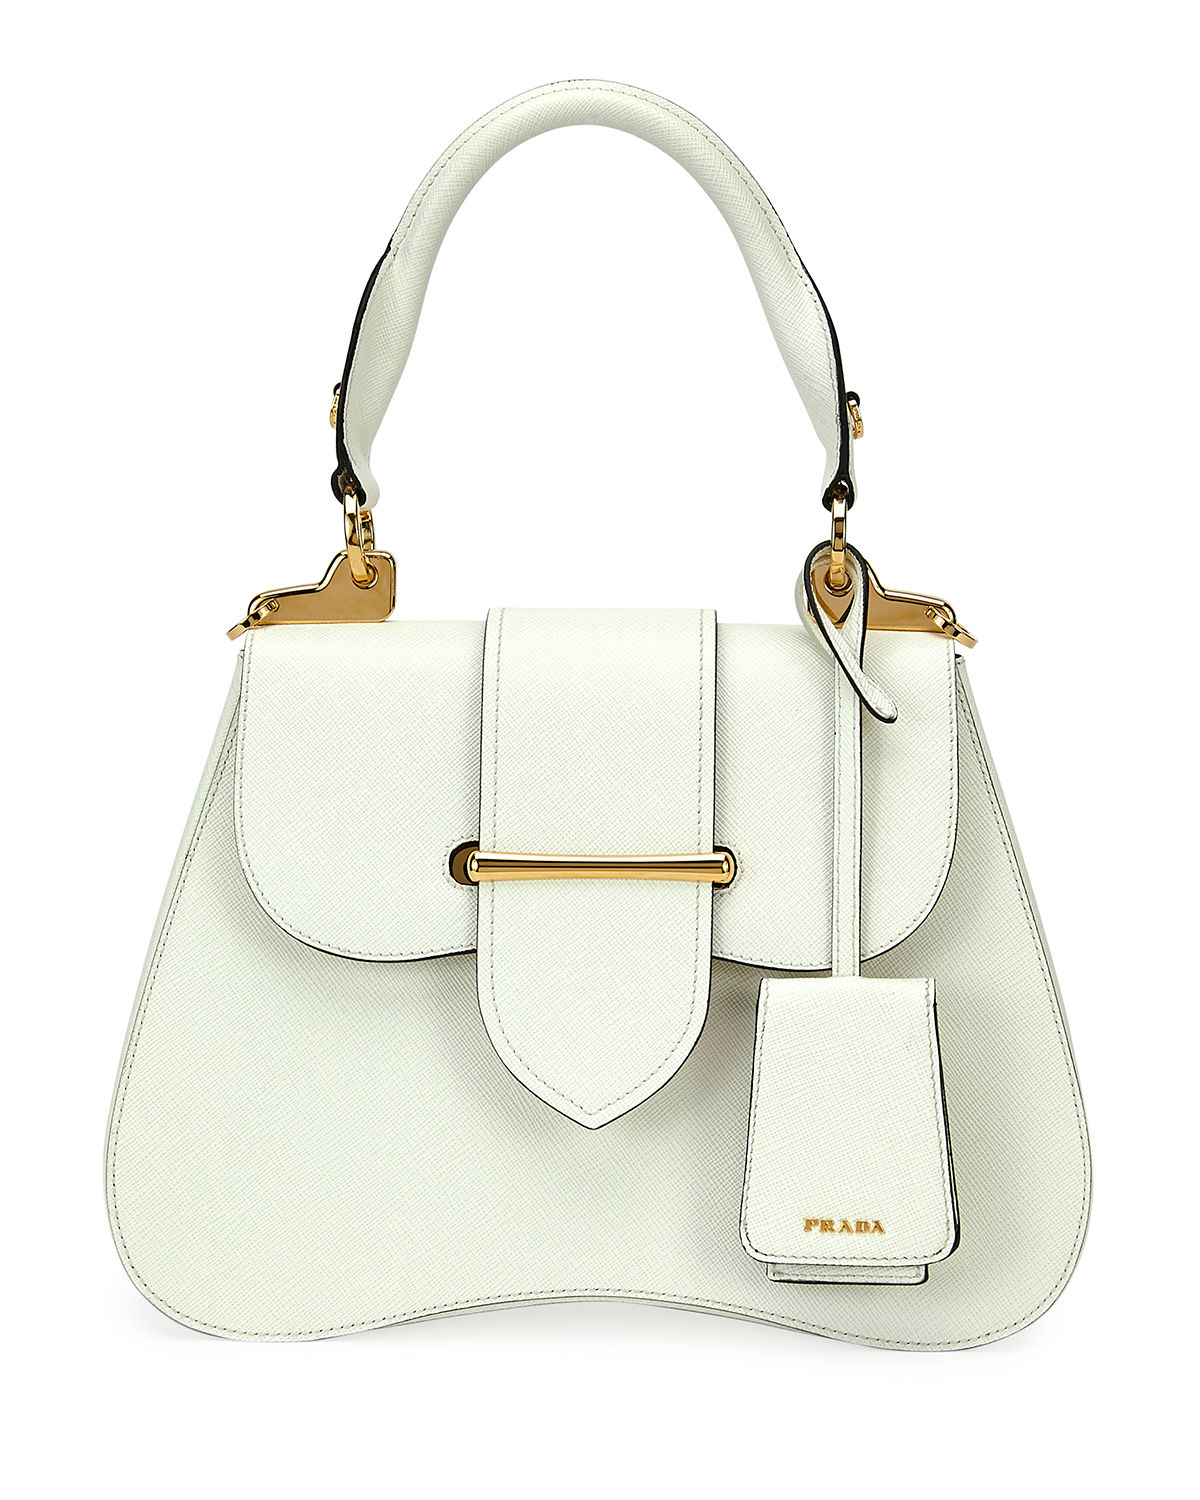 598ac98d5069 Prada Small Prada Sidonie Top-Handle Tote Bag